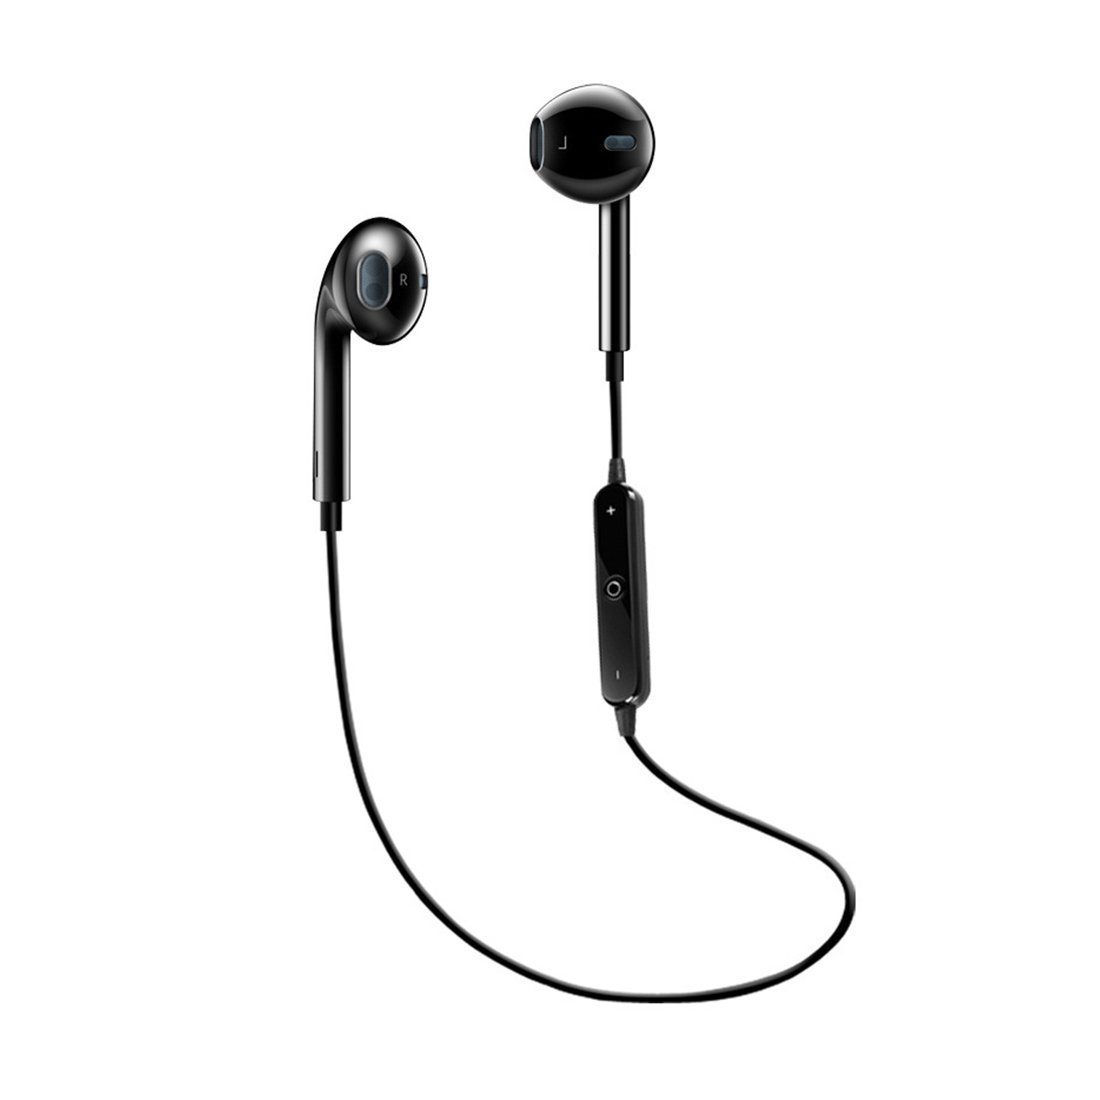 Bluetooth Headphones Wireless Sports Earphones Bluetooth 4.1 Earbuds Mini HD Stereo Headset Sweatproof Earphones with Mic for iPhone X 8 7 Samsung S7 S8 and Android phones gifts(Black) YiHao